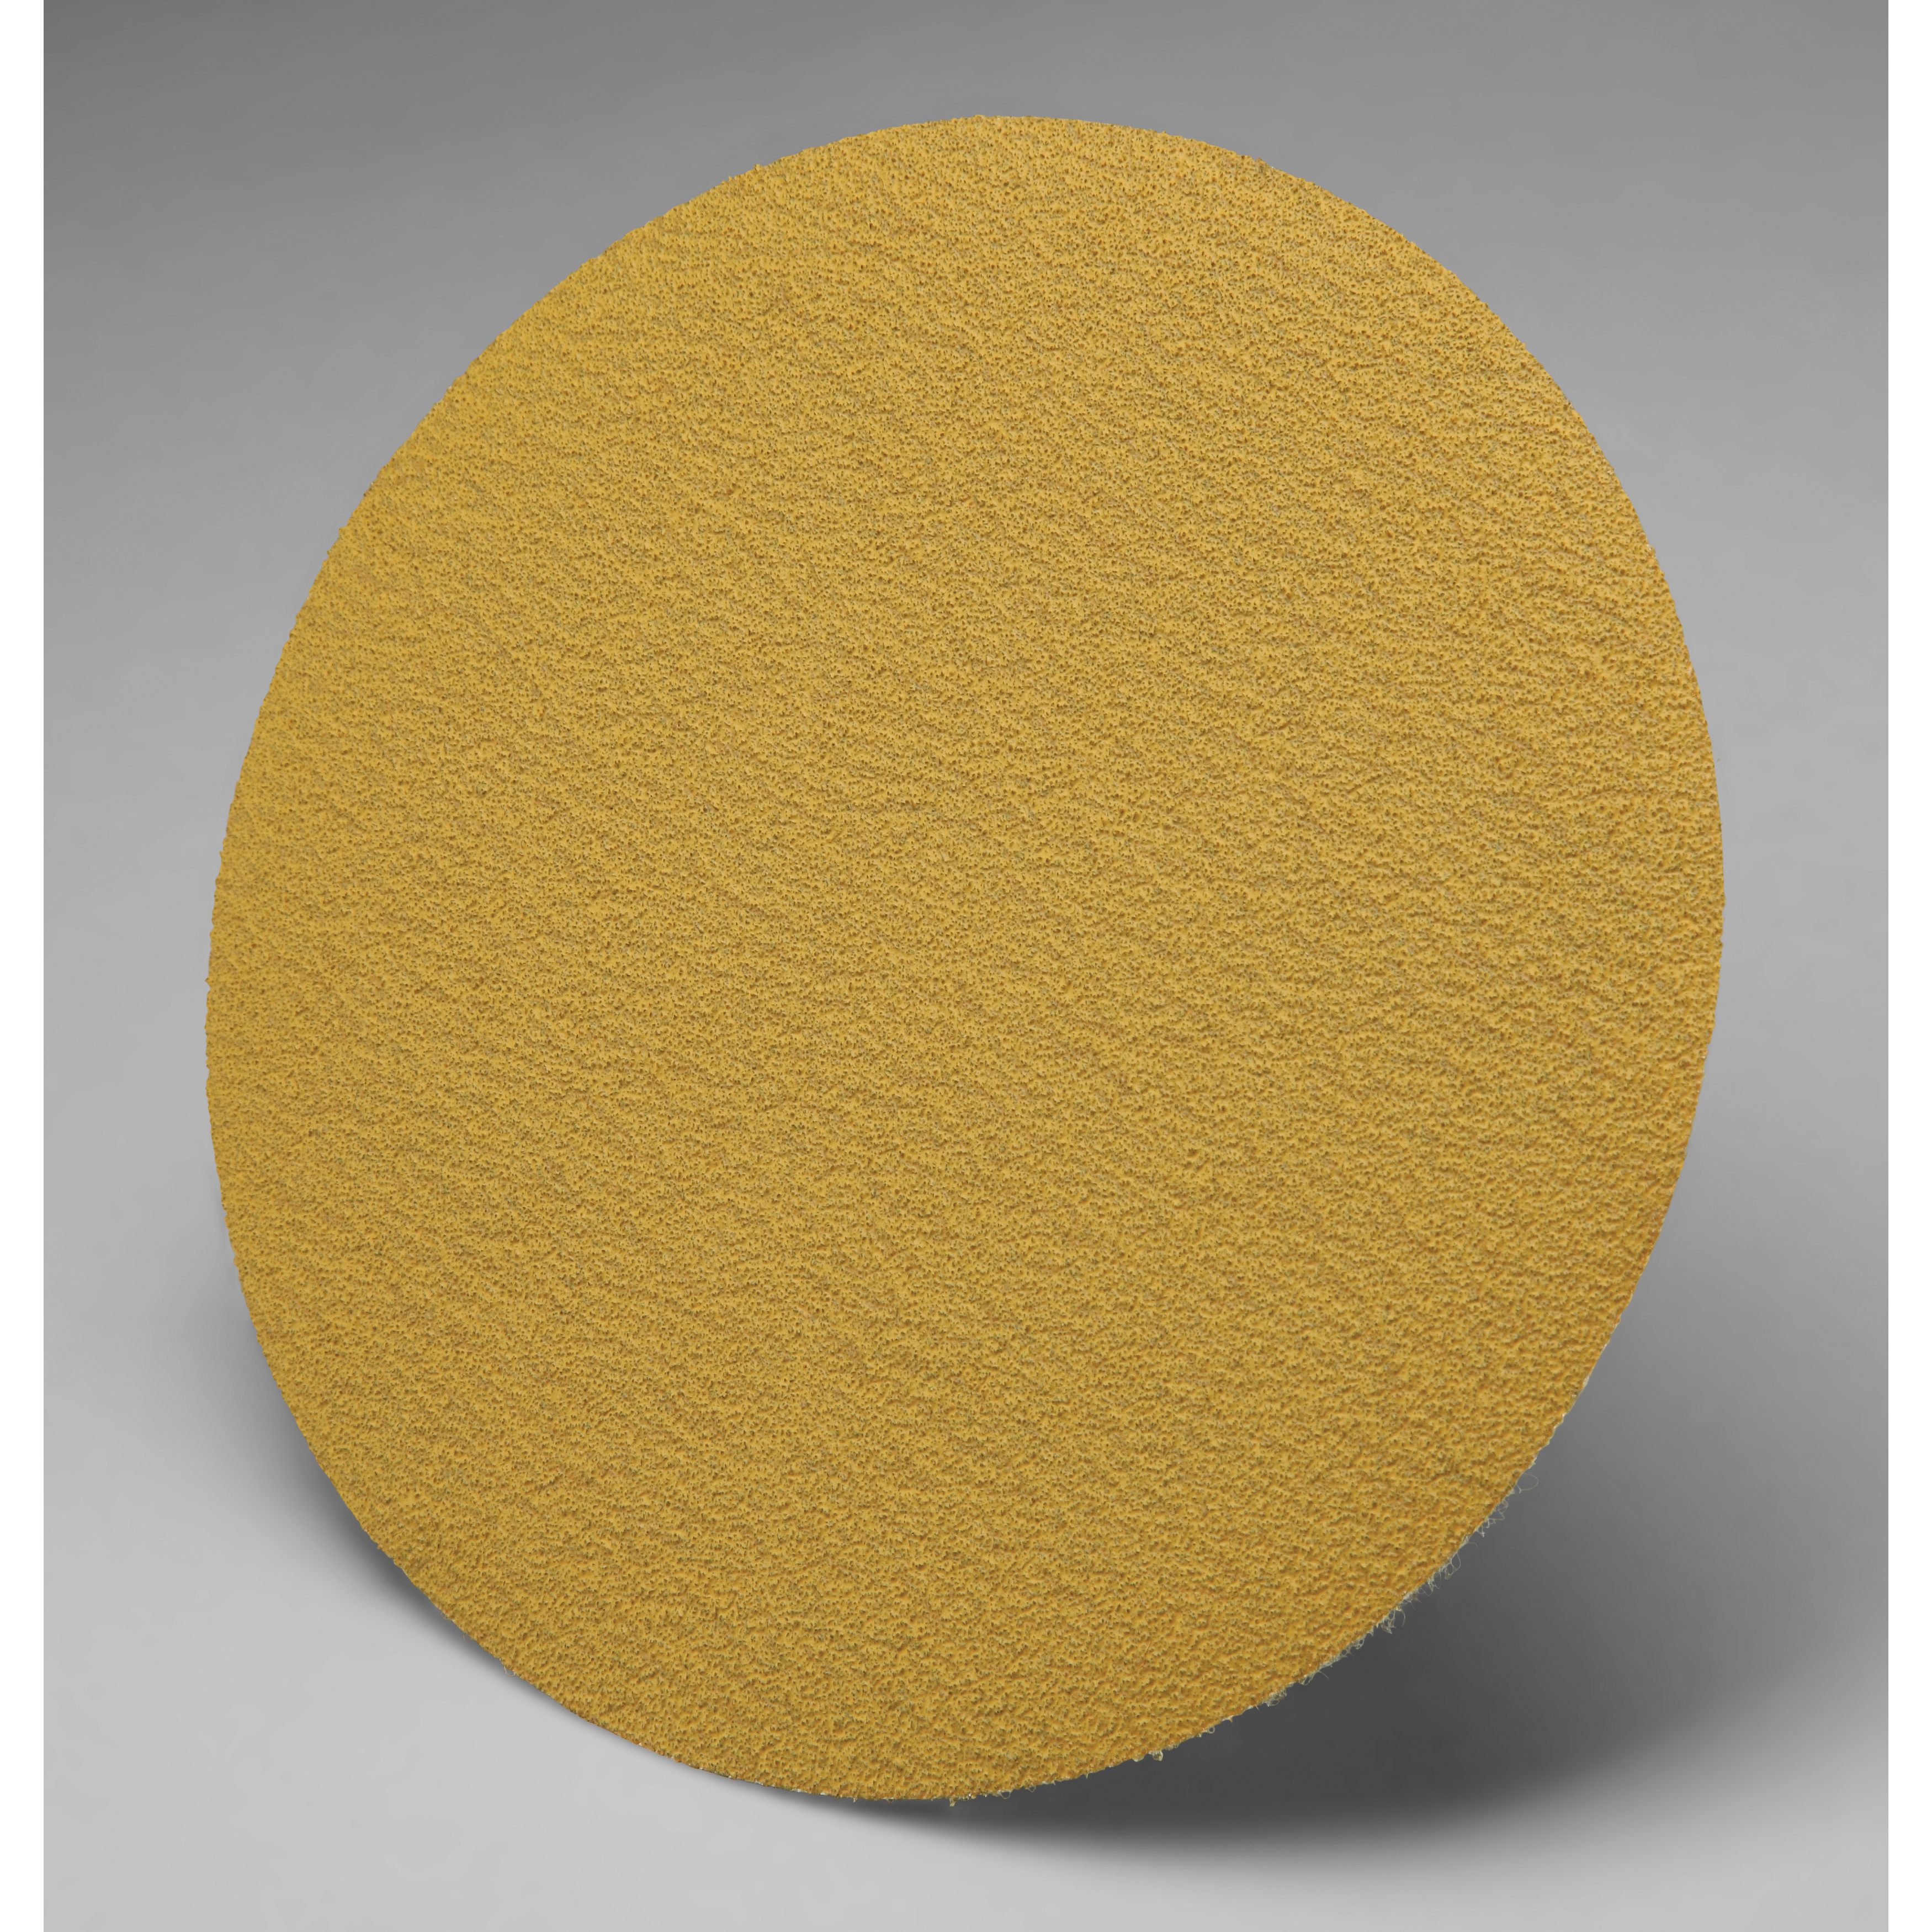 3M™ Hookit™ 051111-69640 255L Abrasive Disc, 6 in Dia Disc, P150 Grit, Very Fine Grade, Aluminum Oxide Abrasive, Film Backing